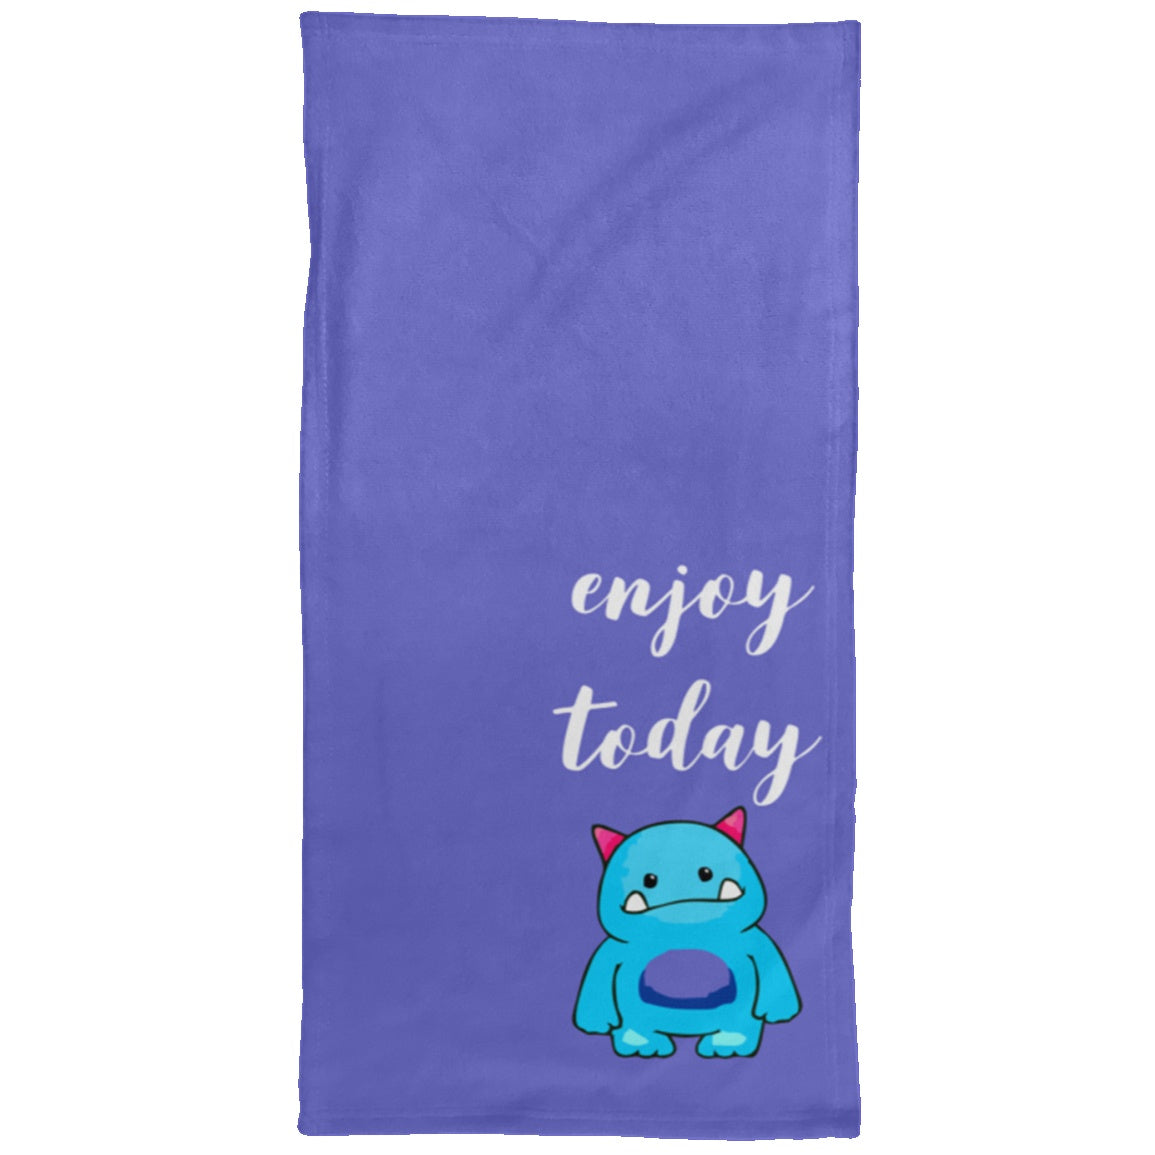 Enjoy Today Chargimal Hand Towel - 15x30